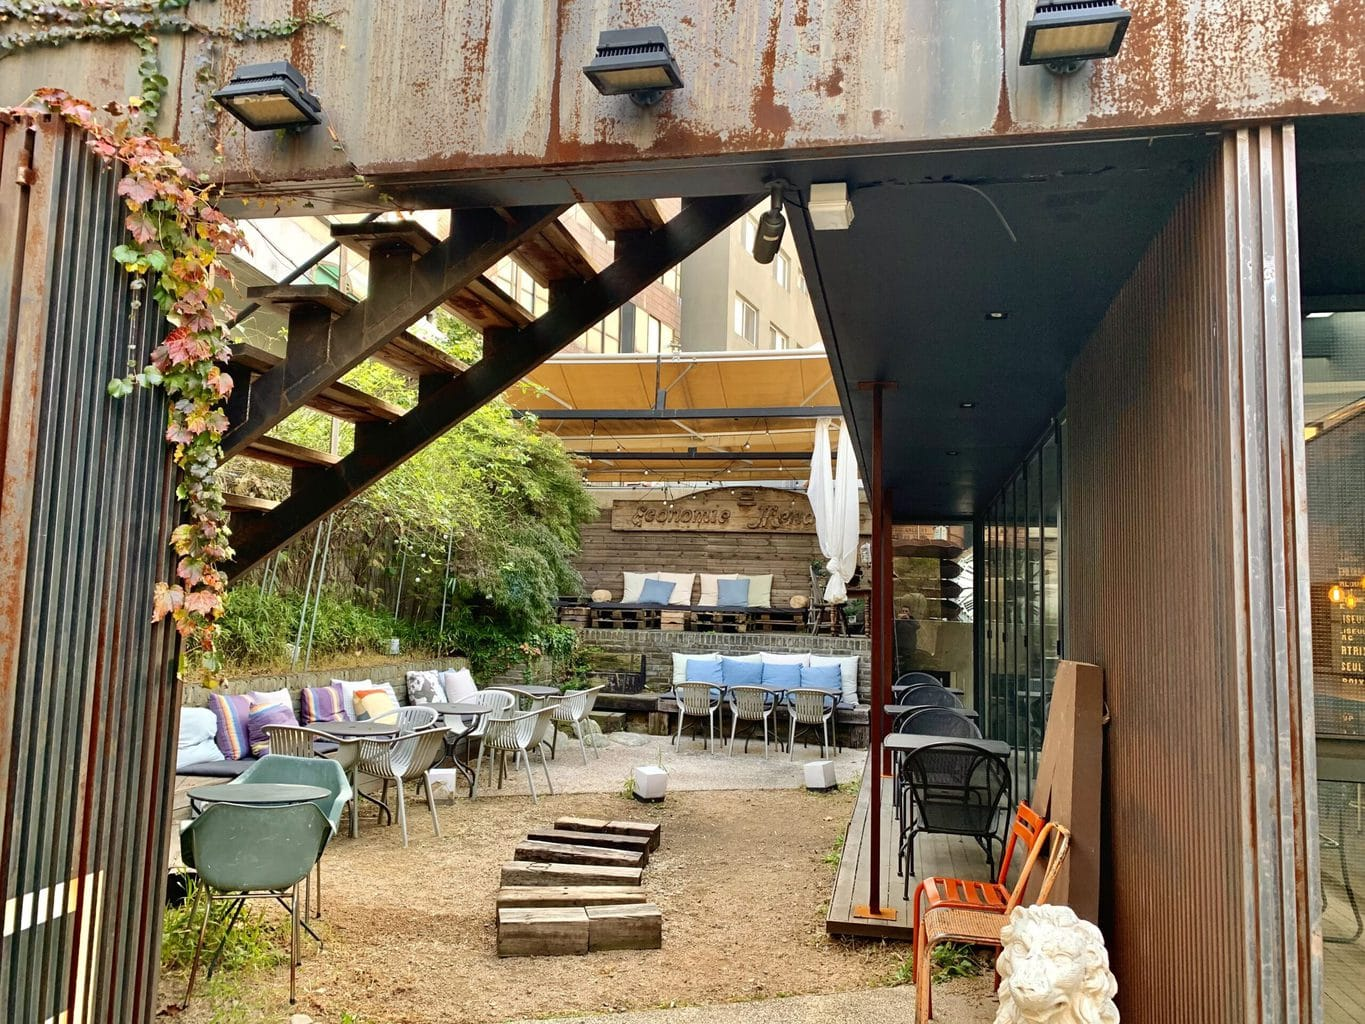 Cafe Ando Outdoor seating